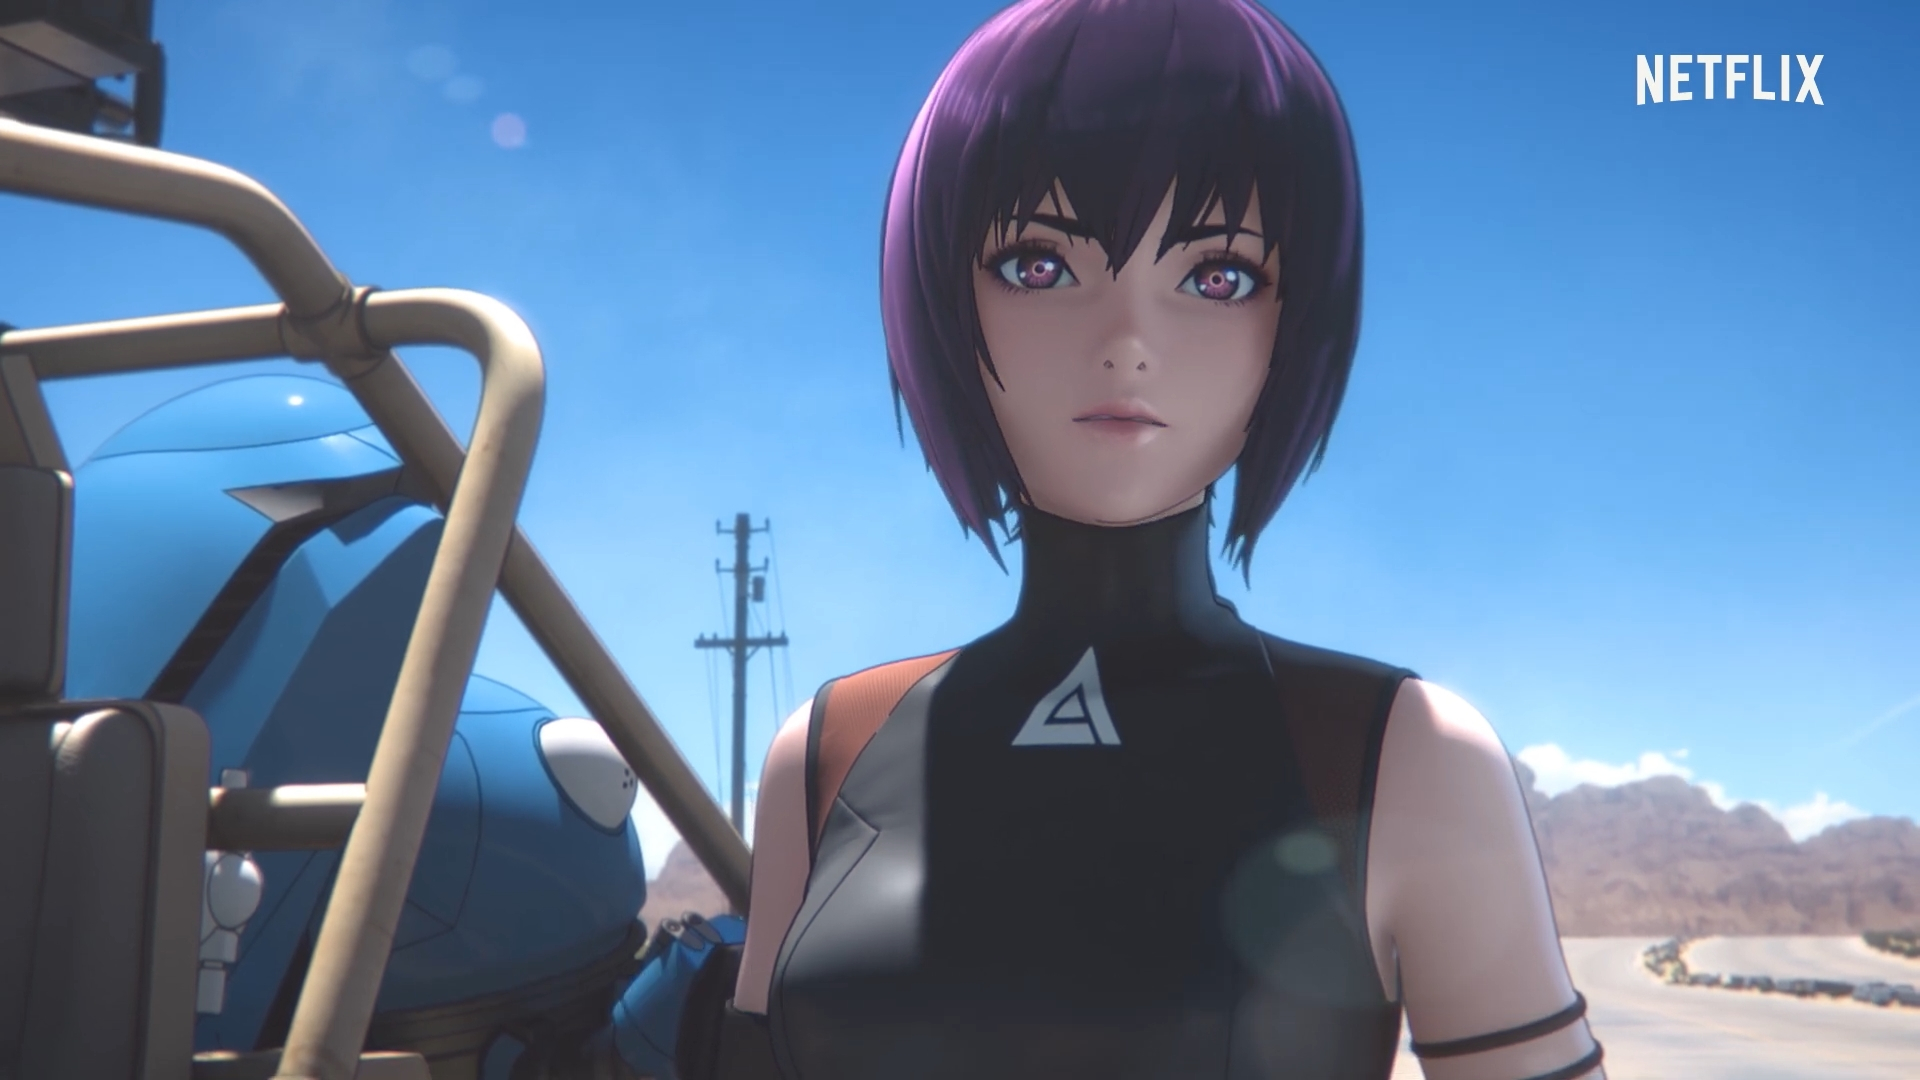 Spring 2020 Start.Ghost In The Shell Sac 2045 New Teaser Reveals Spring 2020